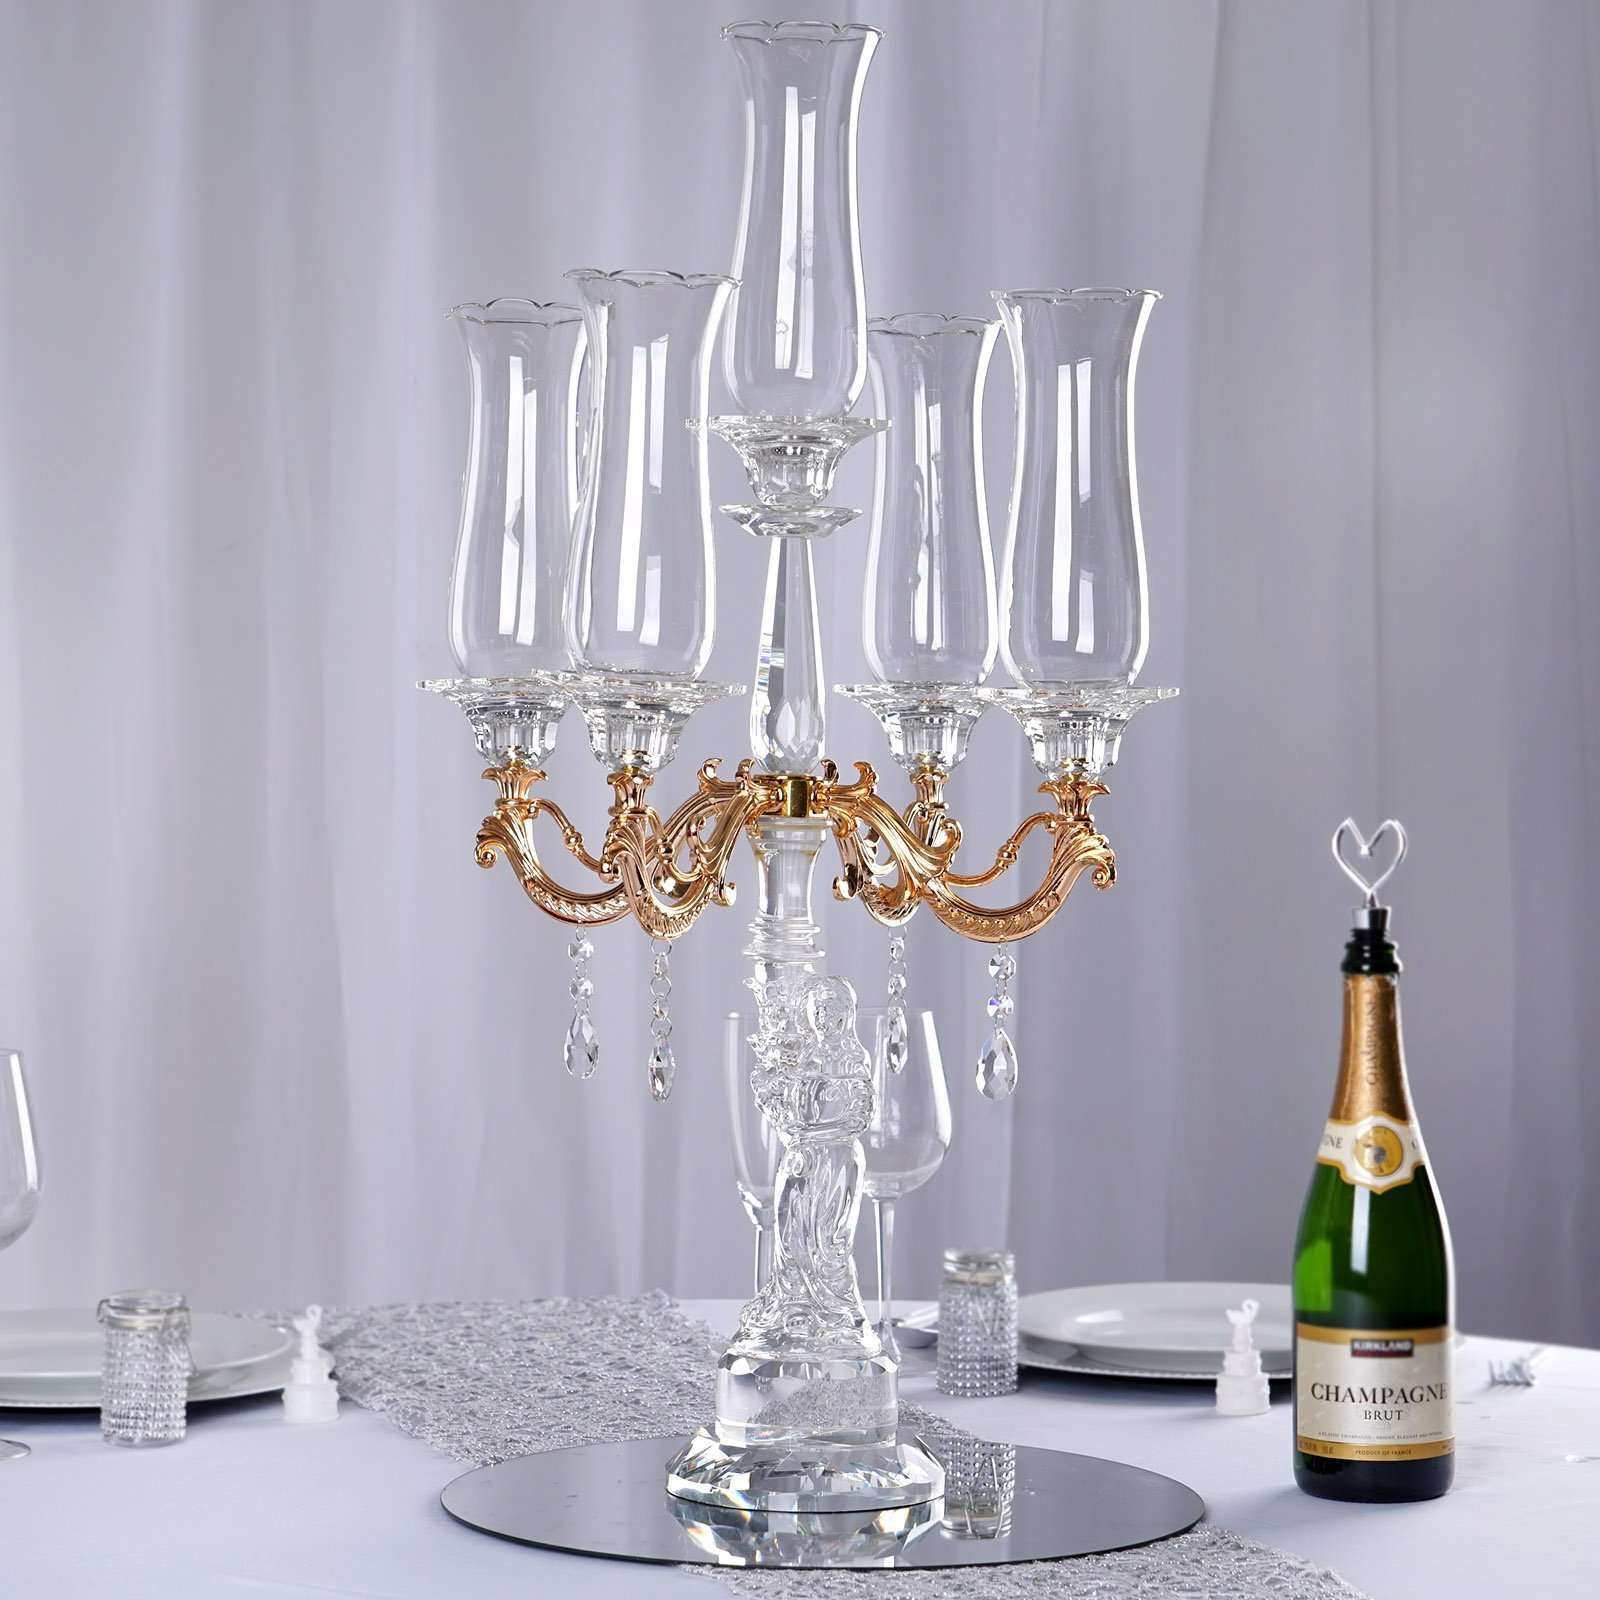 31 Tall Handcrafted 5 Gold Arm Crystal Glass Table Top Candelabra Hur Chaircoverfactory